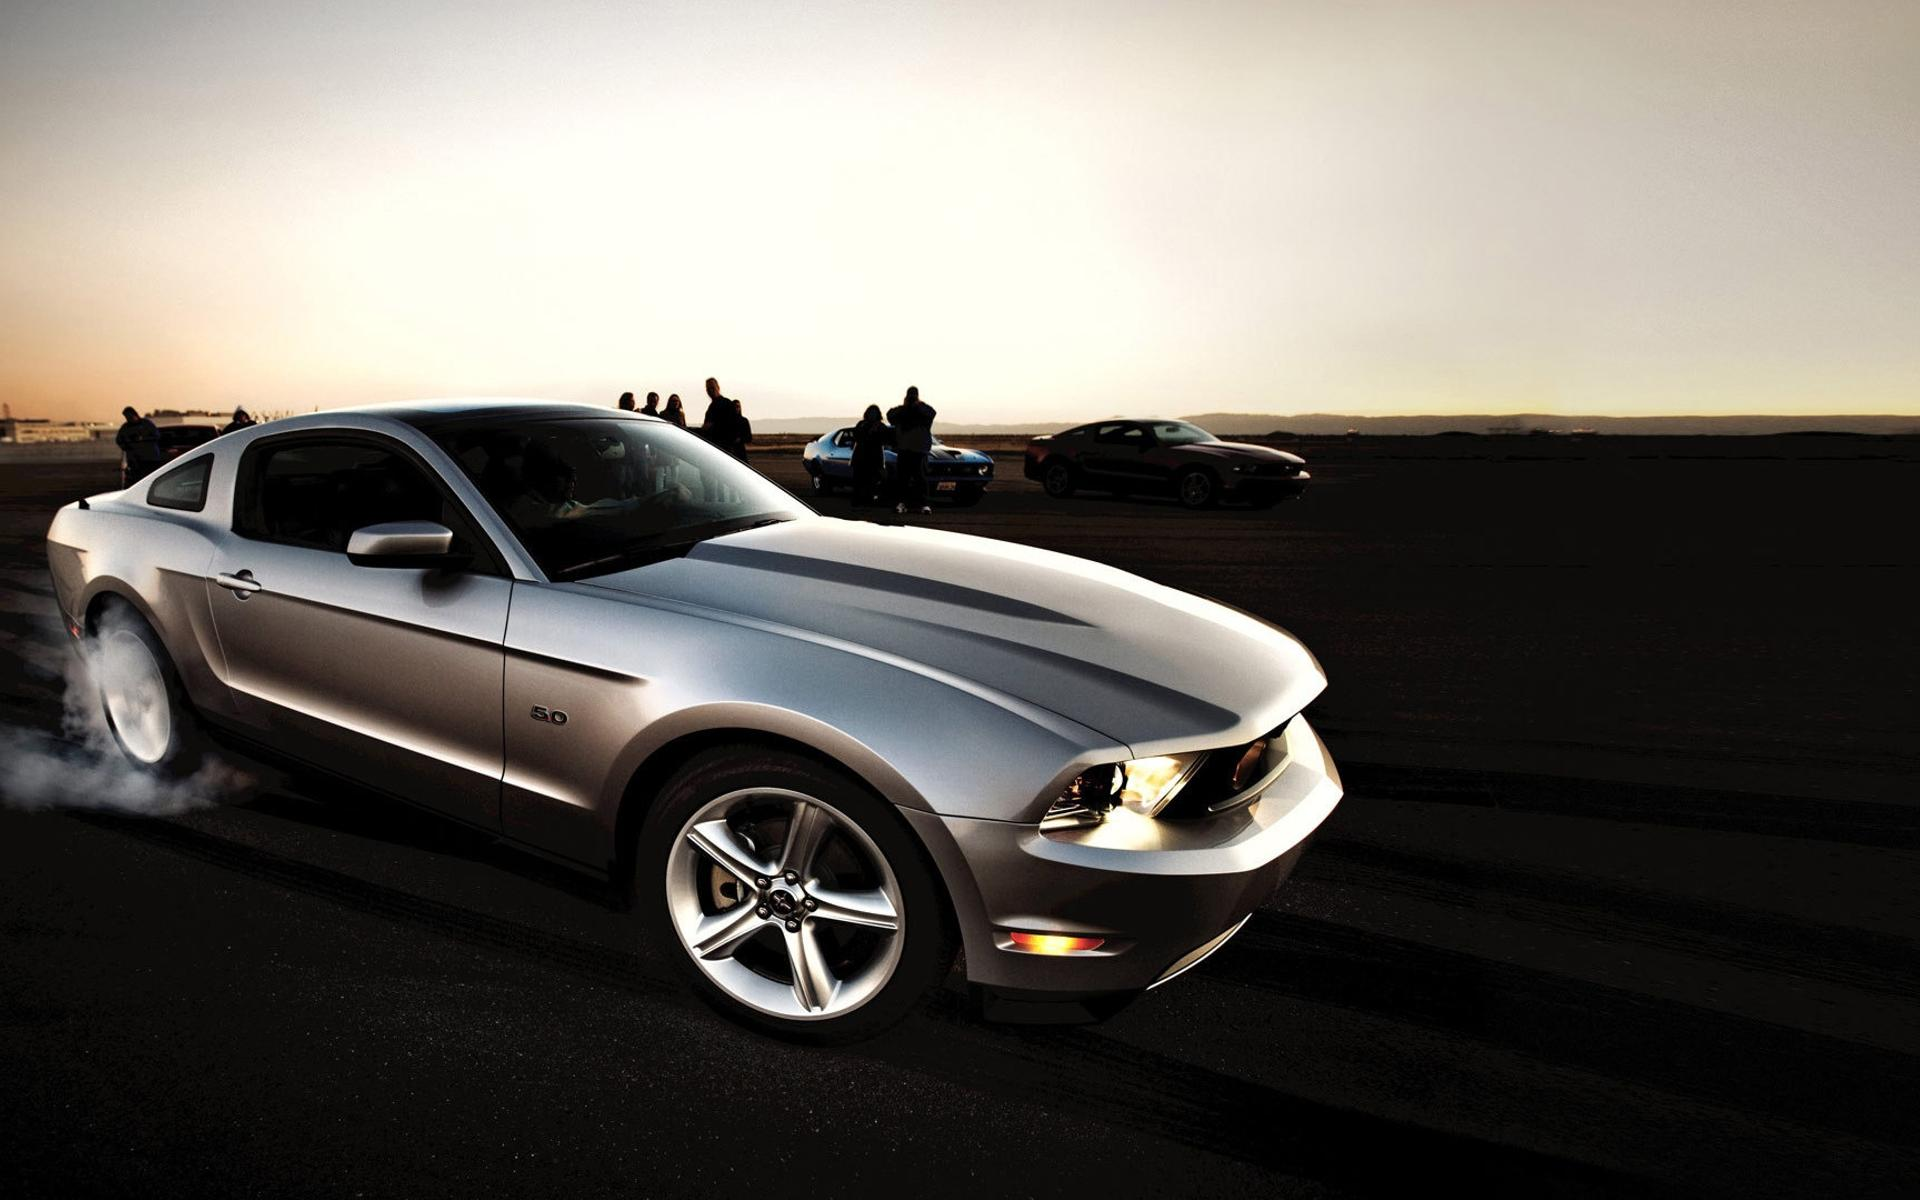 Golden Ford Mustang Gorgeous Car Wallpaper Download 1920x1200